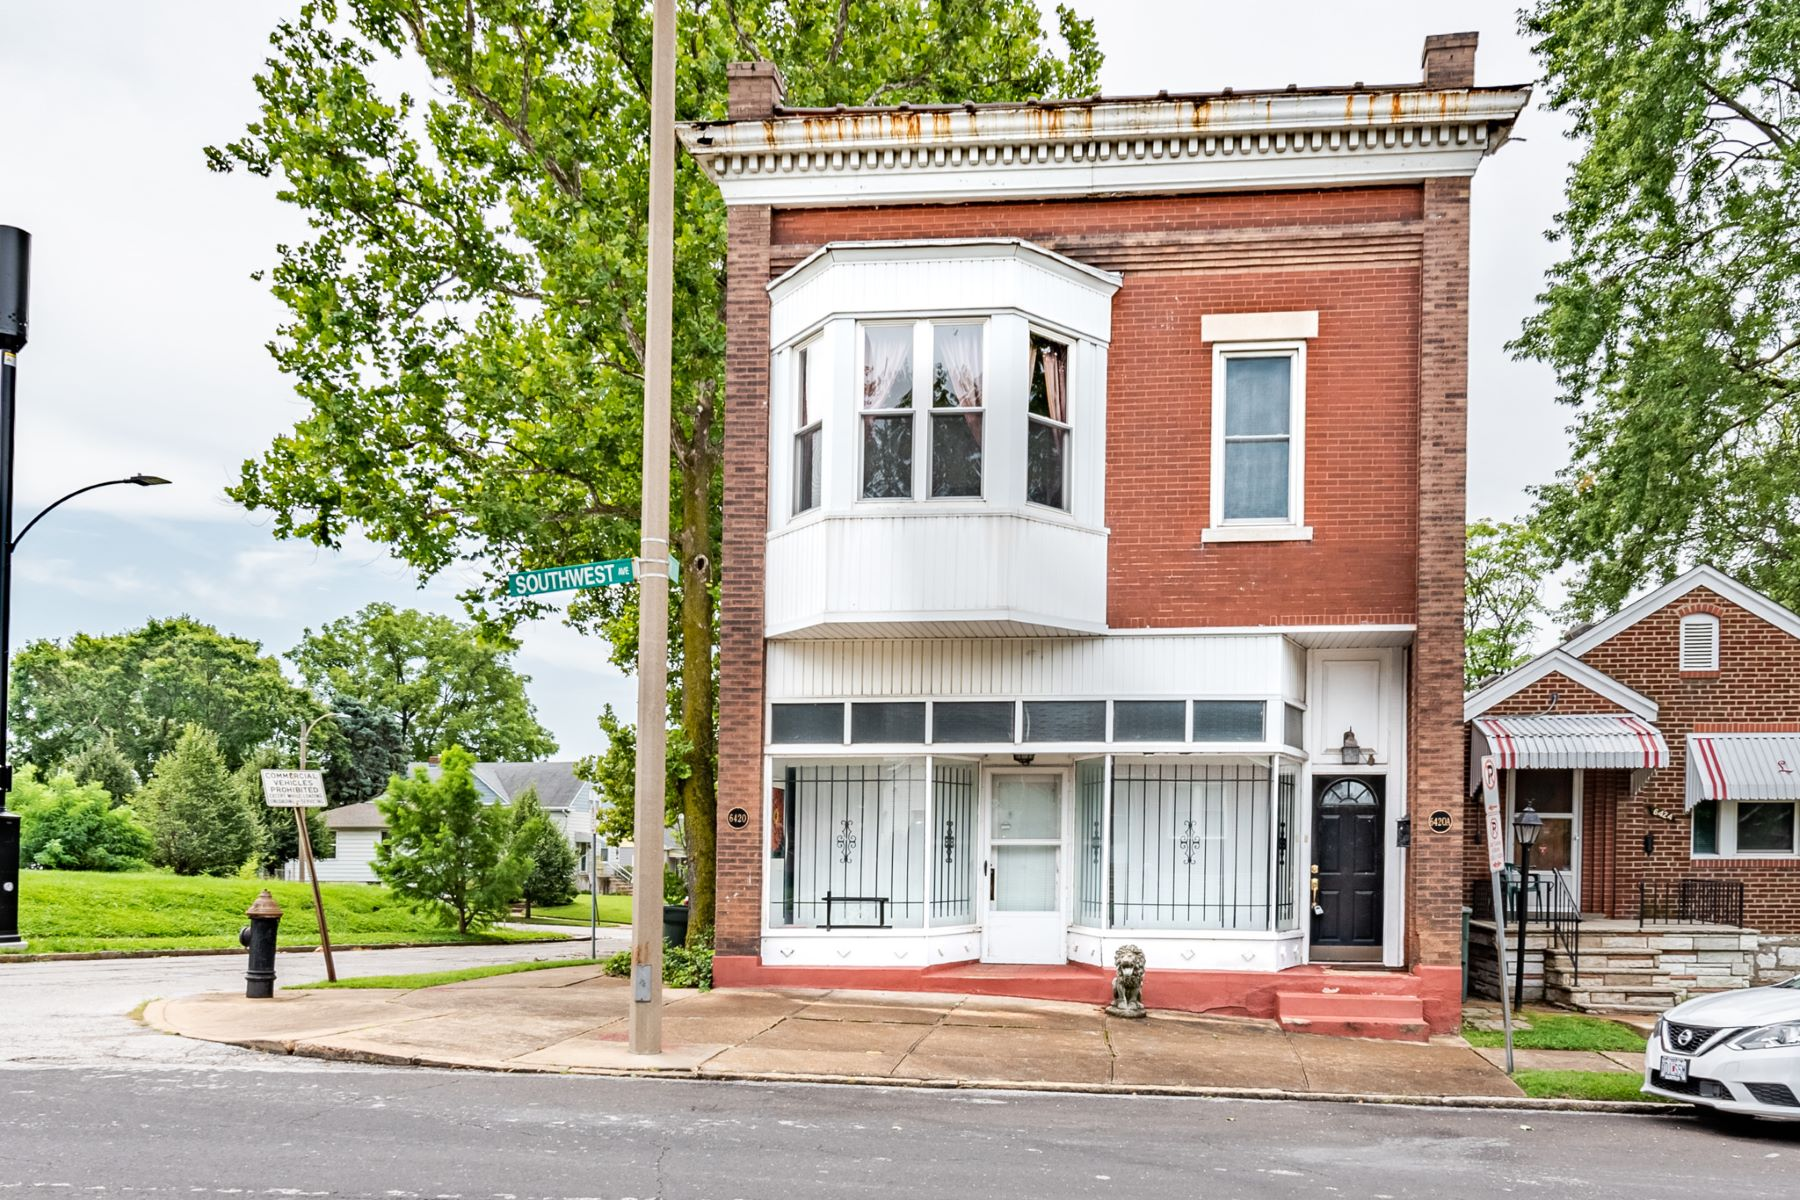 Multi-Family Homes for Sale at Mixed Use in South City 6420 Southwest Avenue St. Louis, Missouri 63139 United States